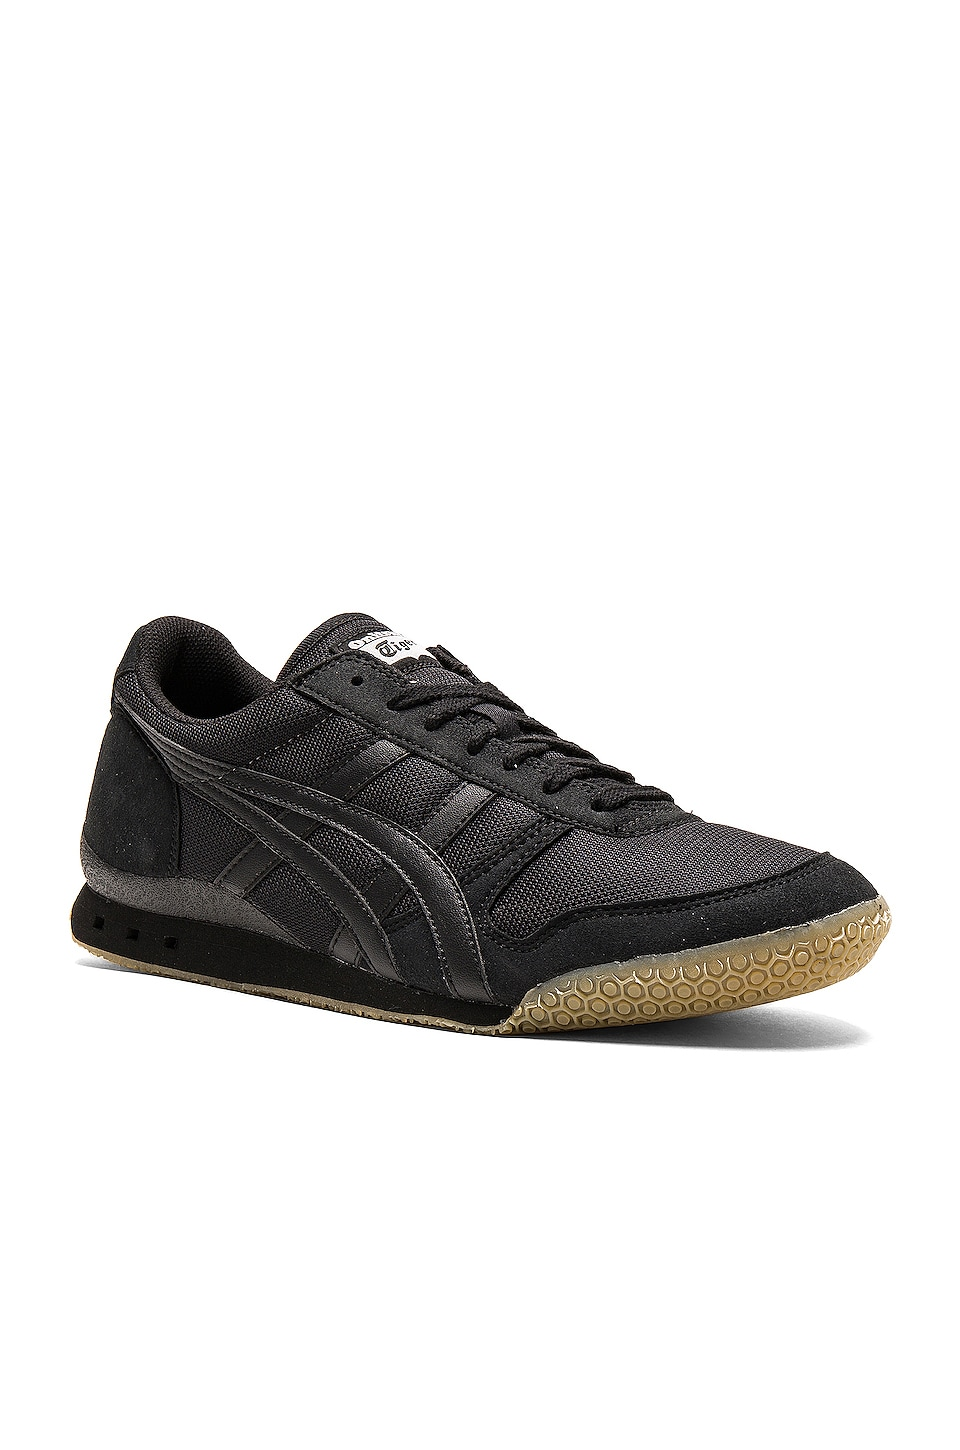 Onitsuka Tiger Ultimate 81 in Black Black